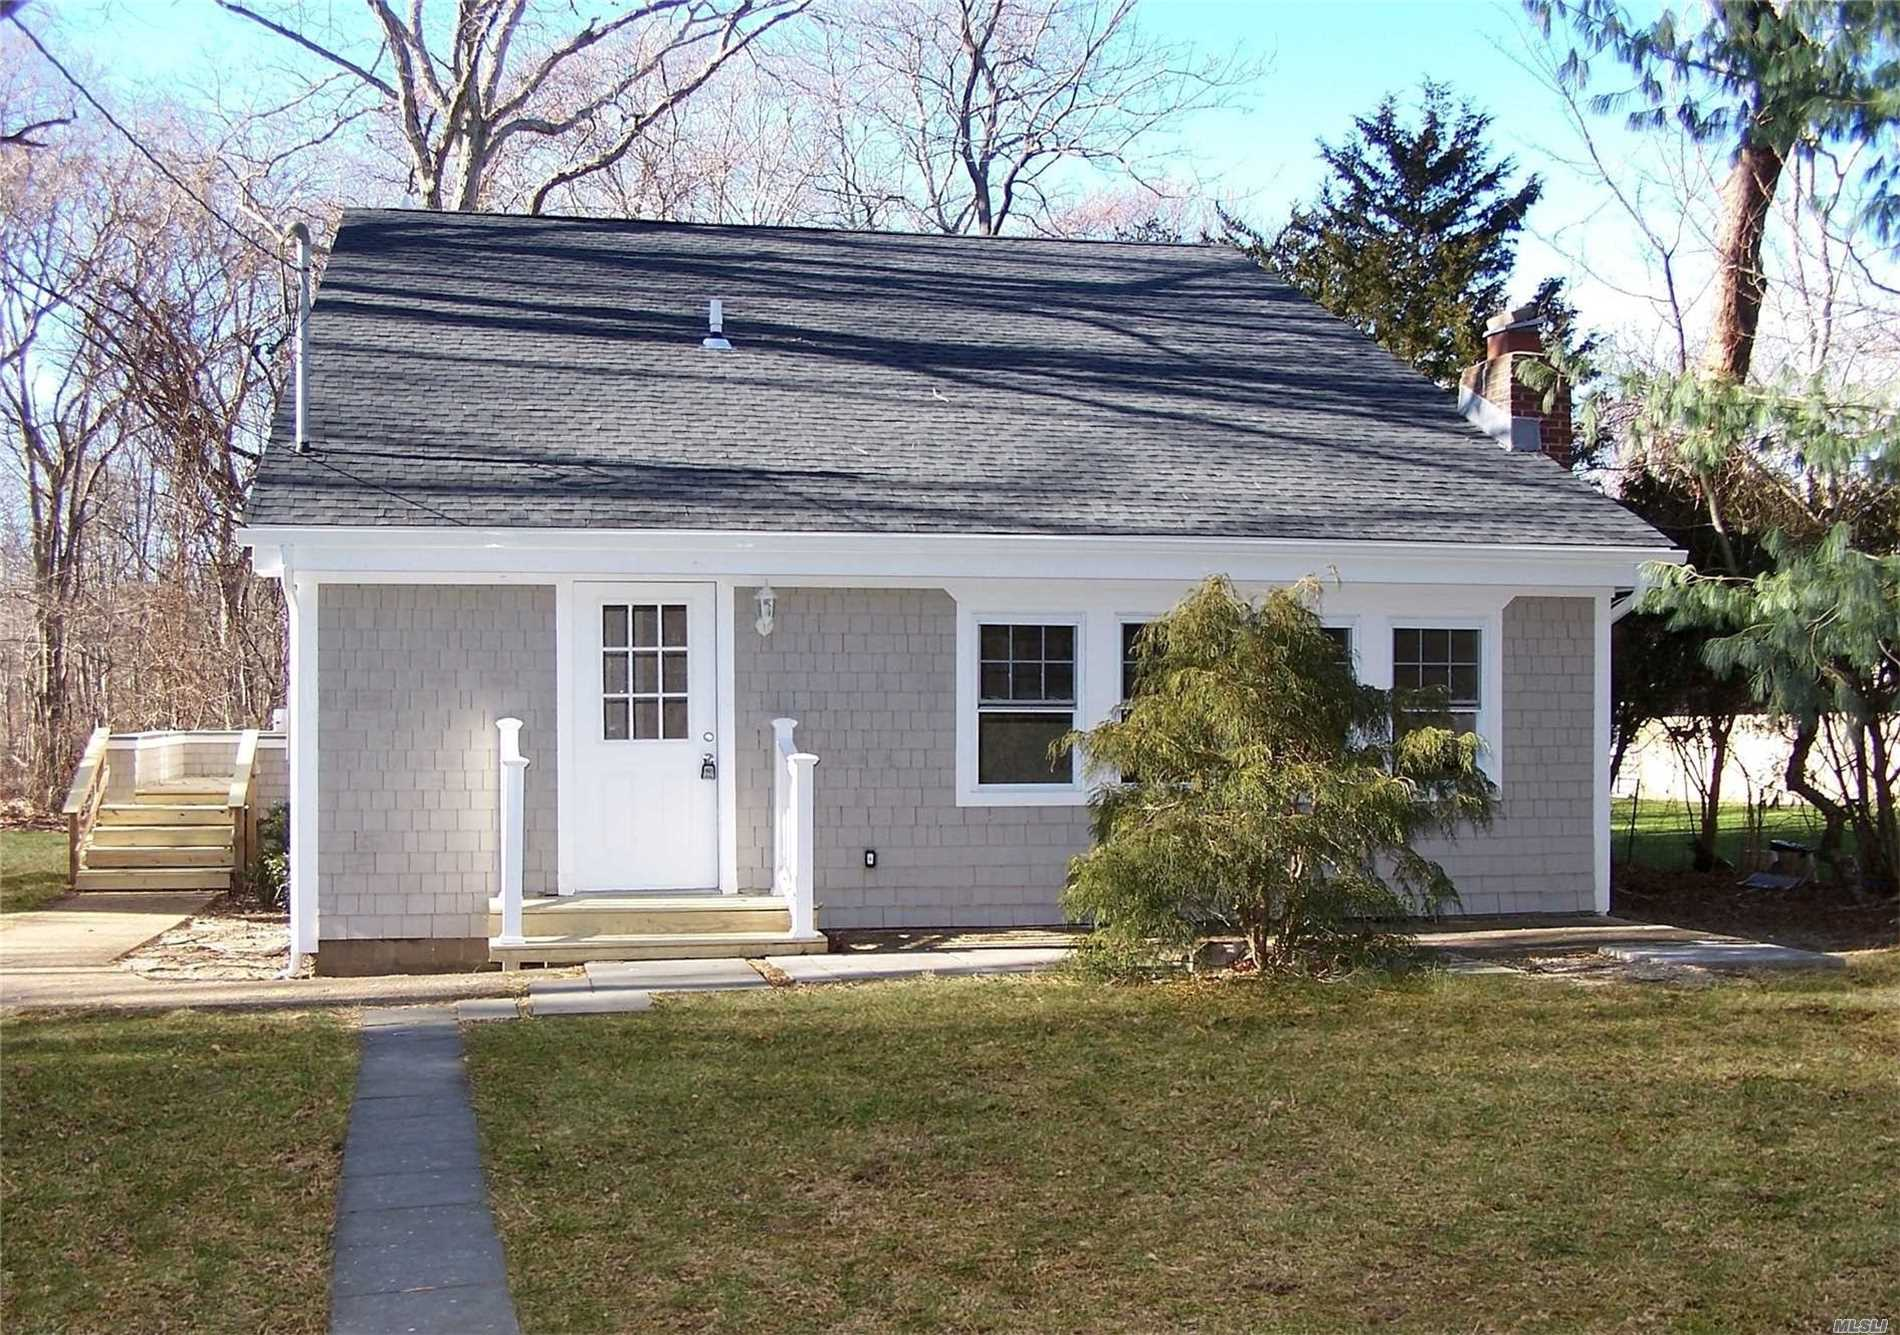 Newly Renovated East Hampton Gem. This Beautiful Contemporary 4 Bedroom and 3 Full Bathroom Home Features New Roof, Stainless Steal Appliances, Quartz Counter tops, Hardwood Floors. Tons of Natural Light. Close To The Water. Easy Access To Road. Don't Miss Out On This Charming East Hampton Beauty.